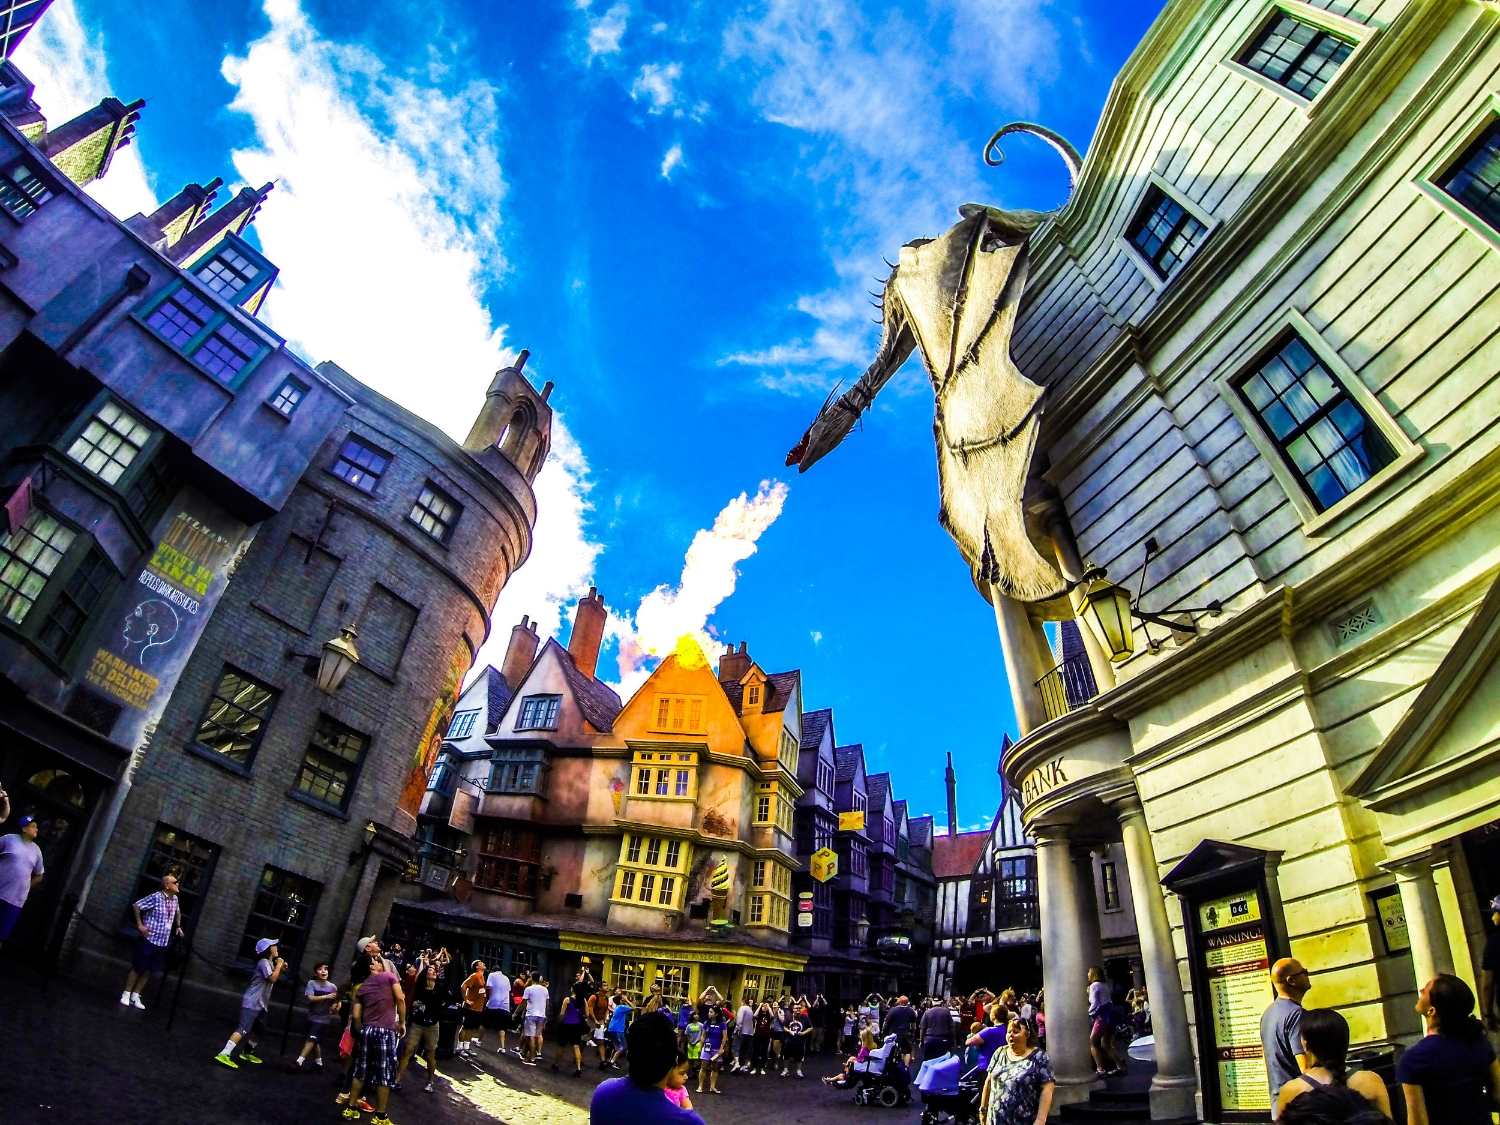 Diagon Alley in Universal Studios Florida.Copyright Bill Forshey. All rights reserved.